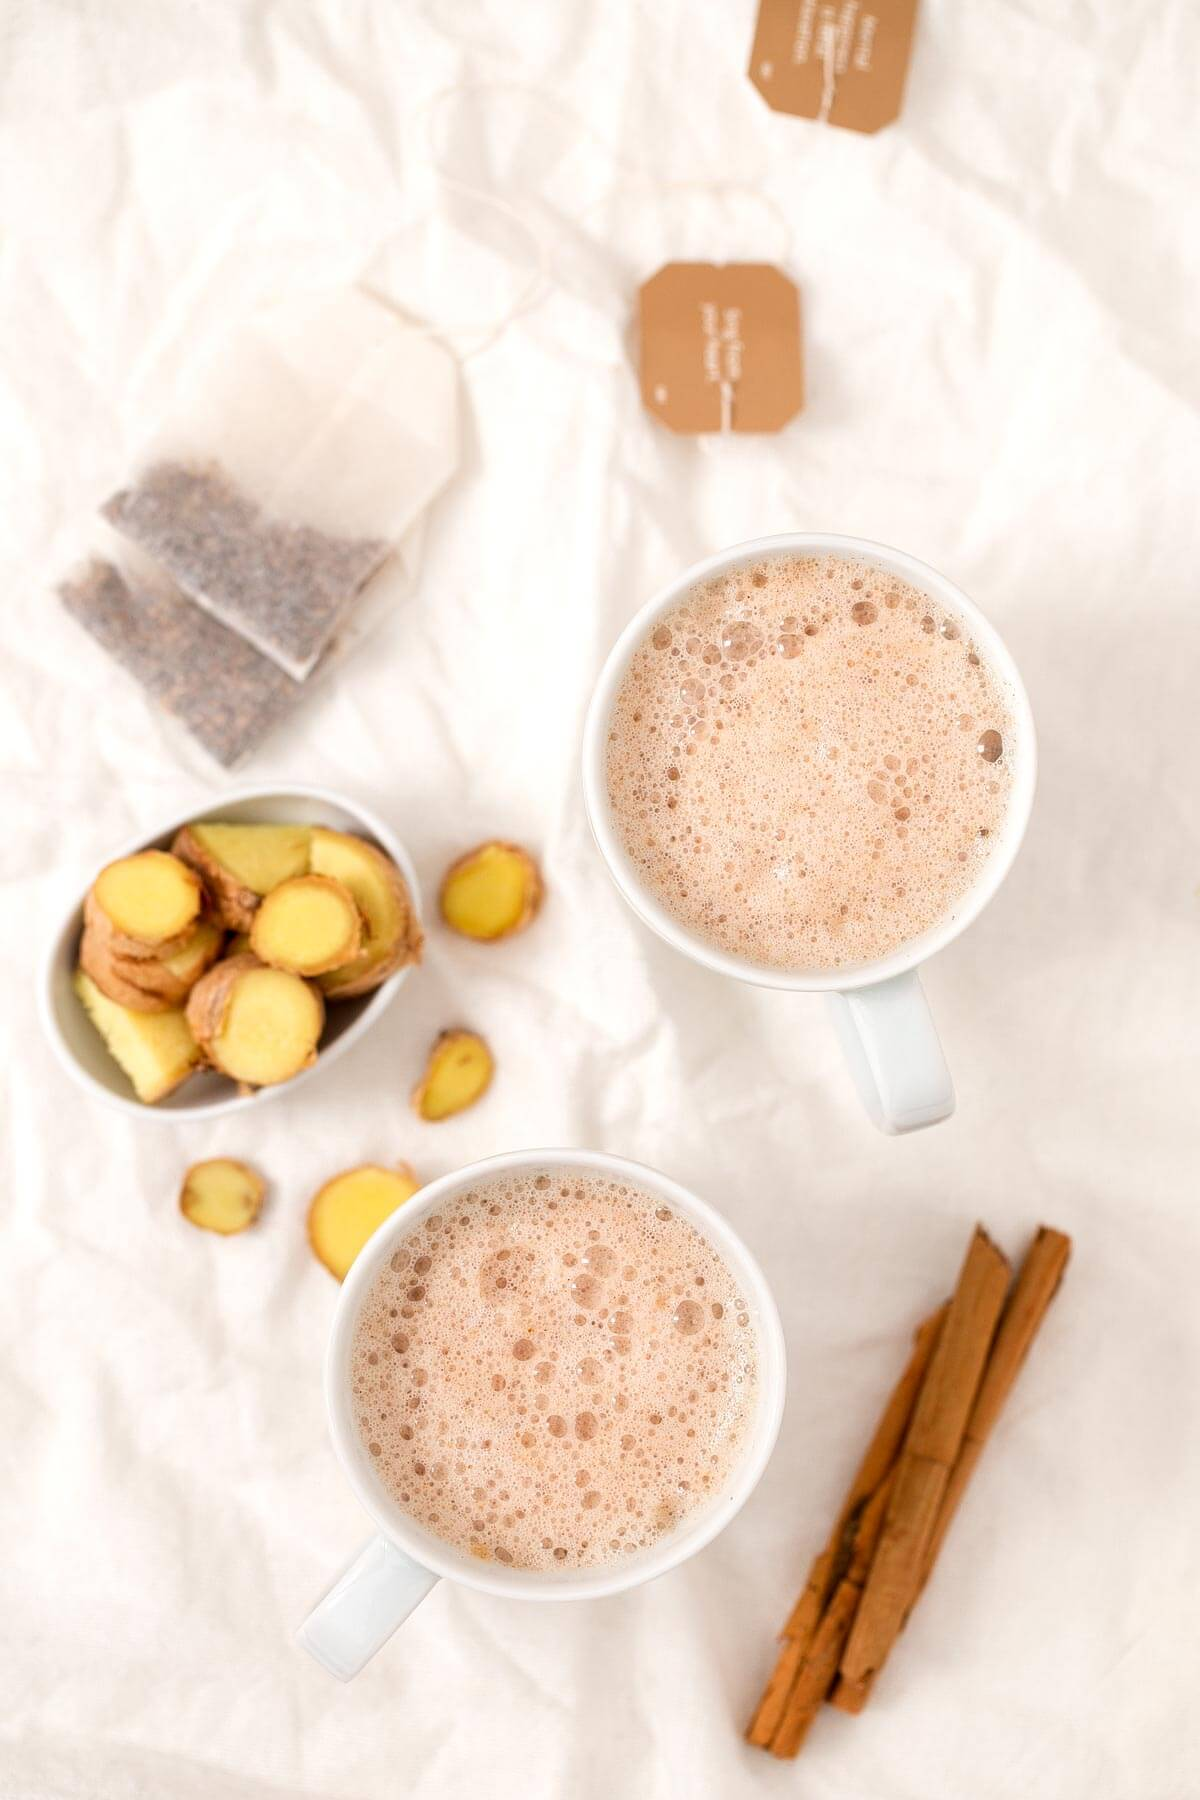 Ginger Latte. - The ginger latte is a straightforward, rich and comforting drink. It is a healthy substitute for coffee and is prepared in no time.